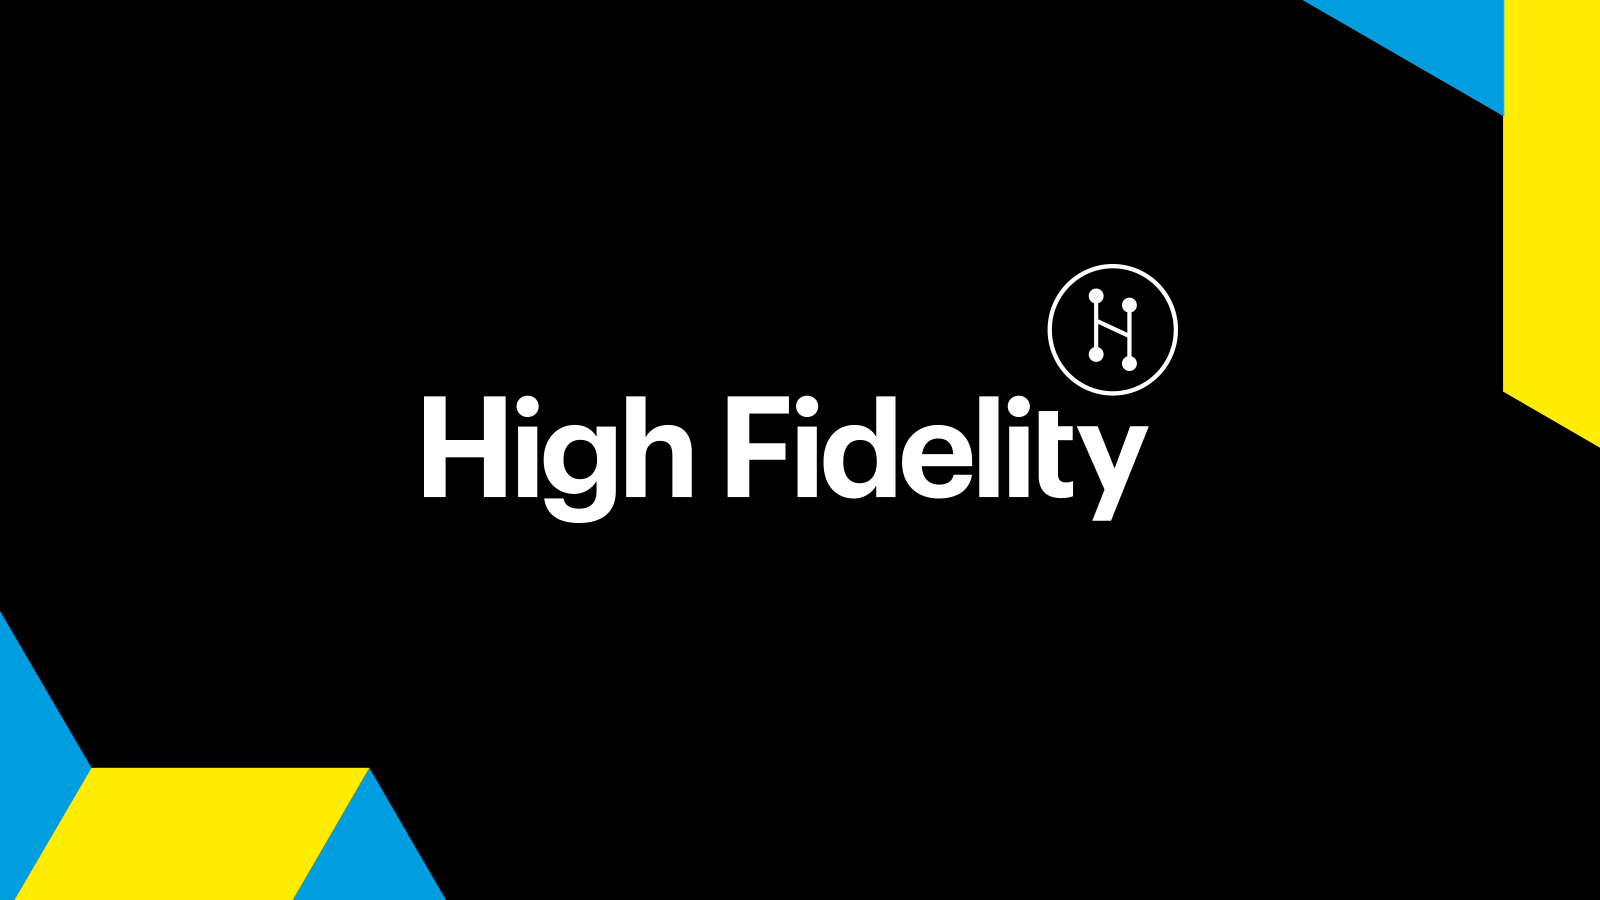 High Fidelity Now Supports Oculus DK2 on Mac OSX